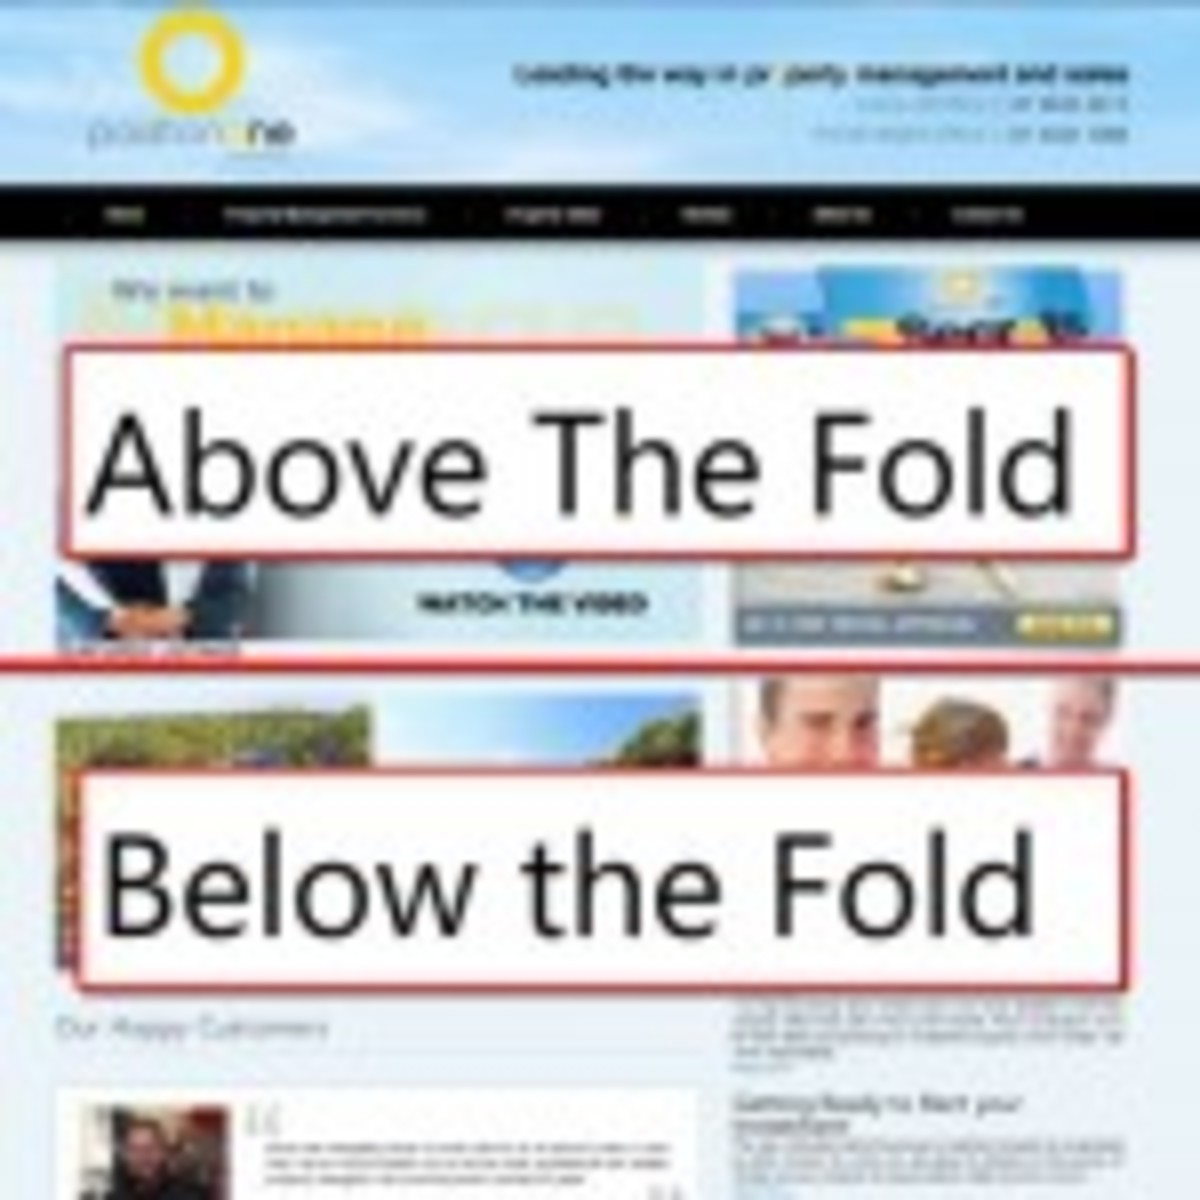 The Fold - Google Images